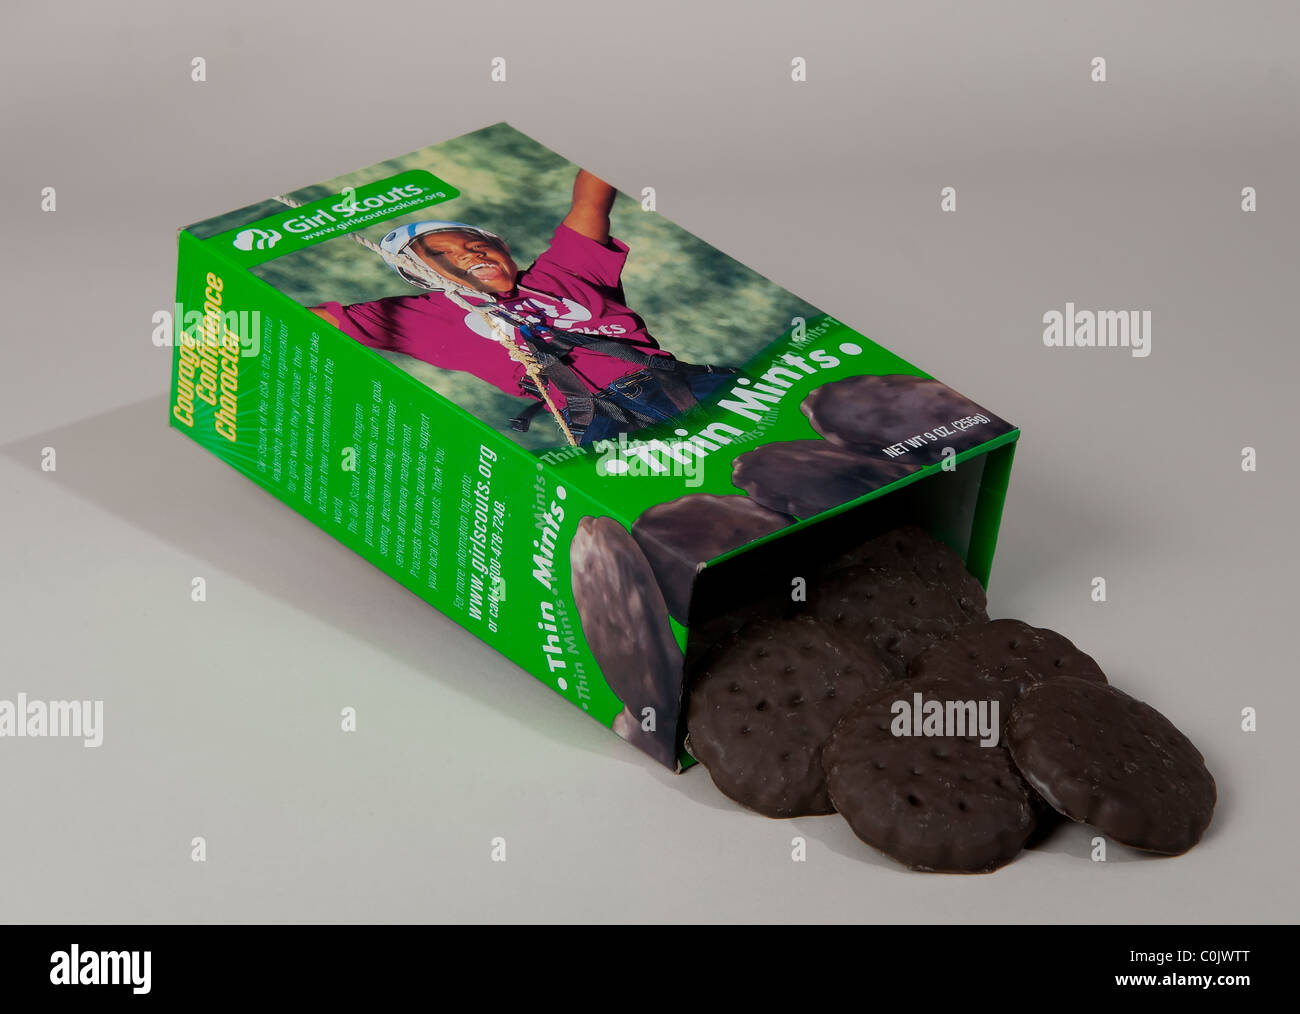 Cookies that spilled out of a box of girl scout cookies - Stock Image